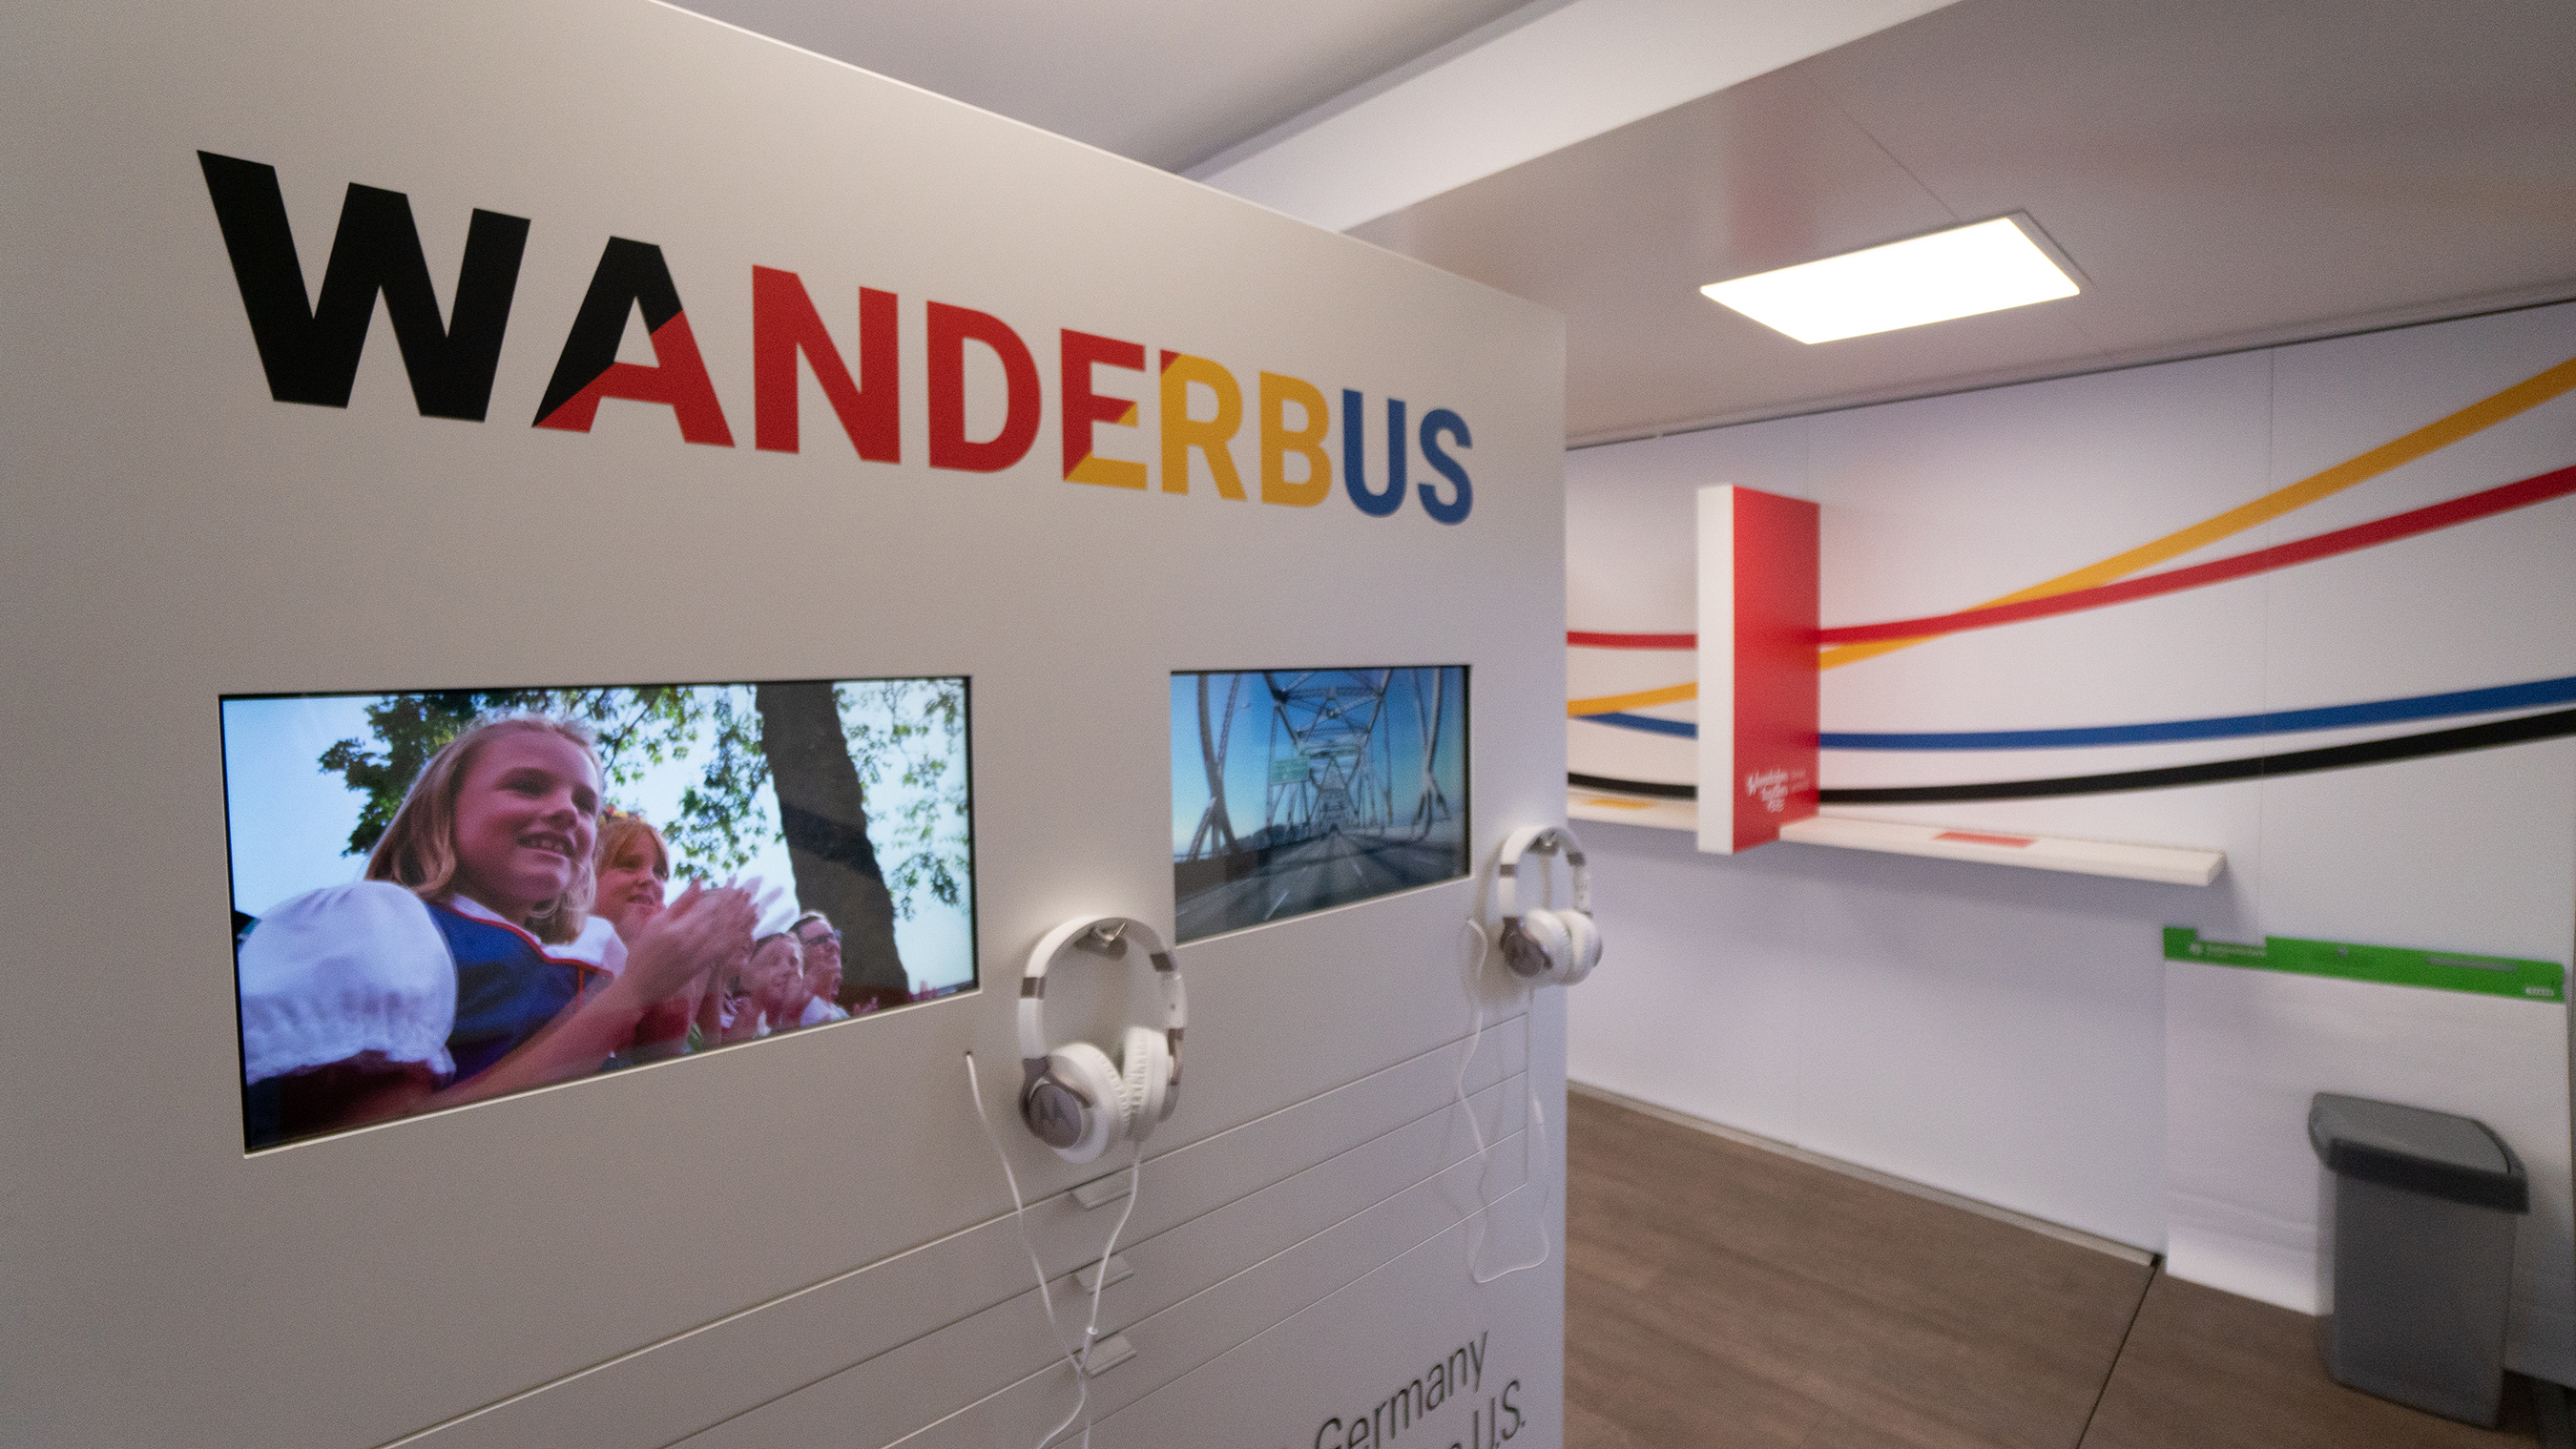 WanderbUS features interactive video learning